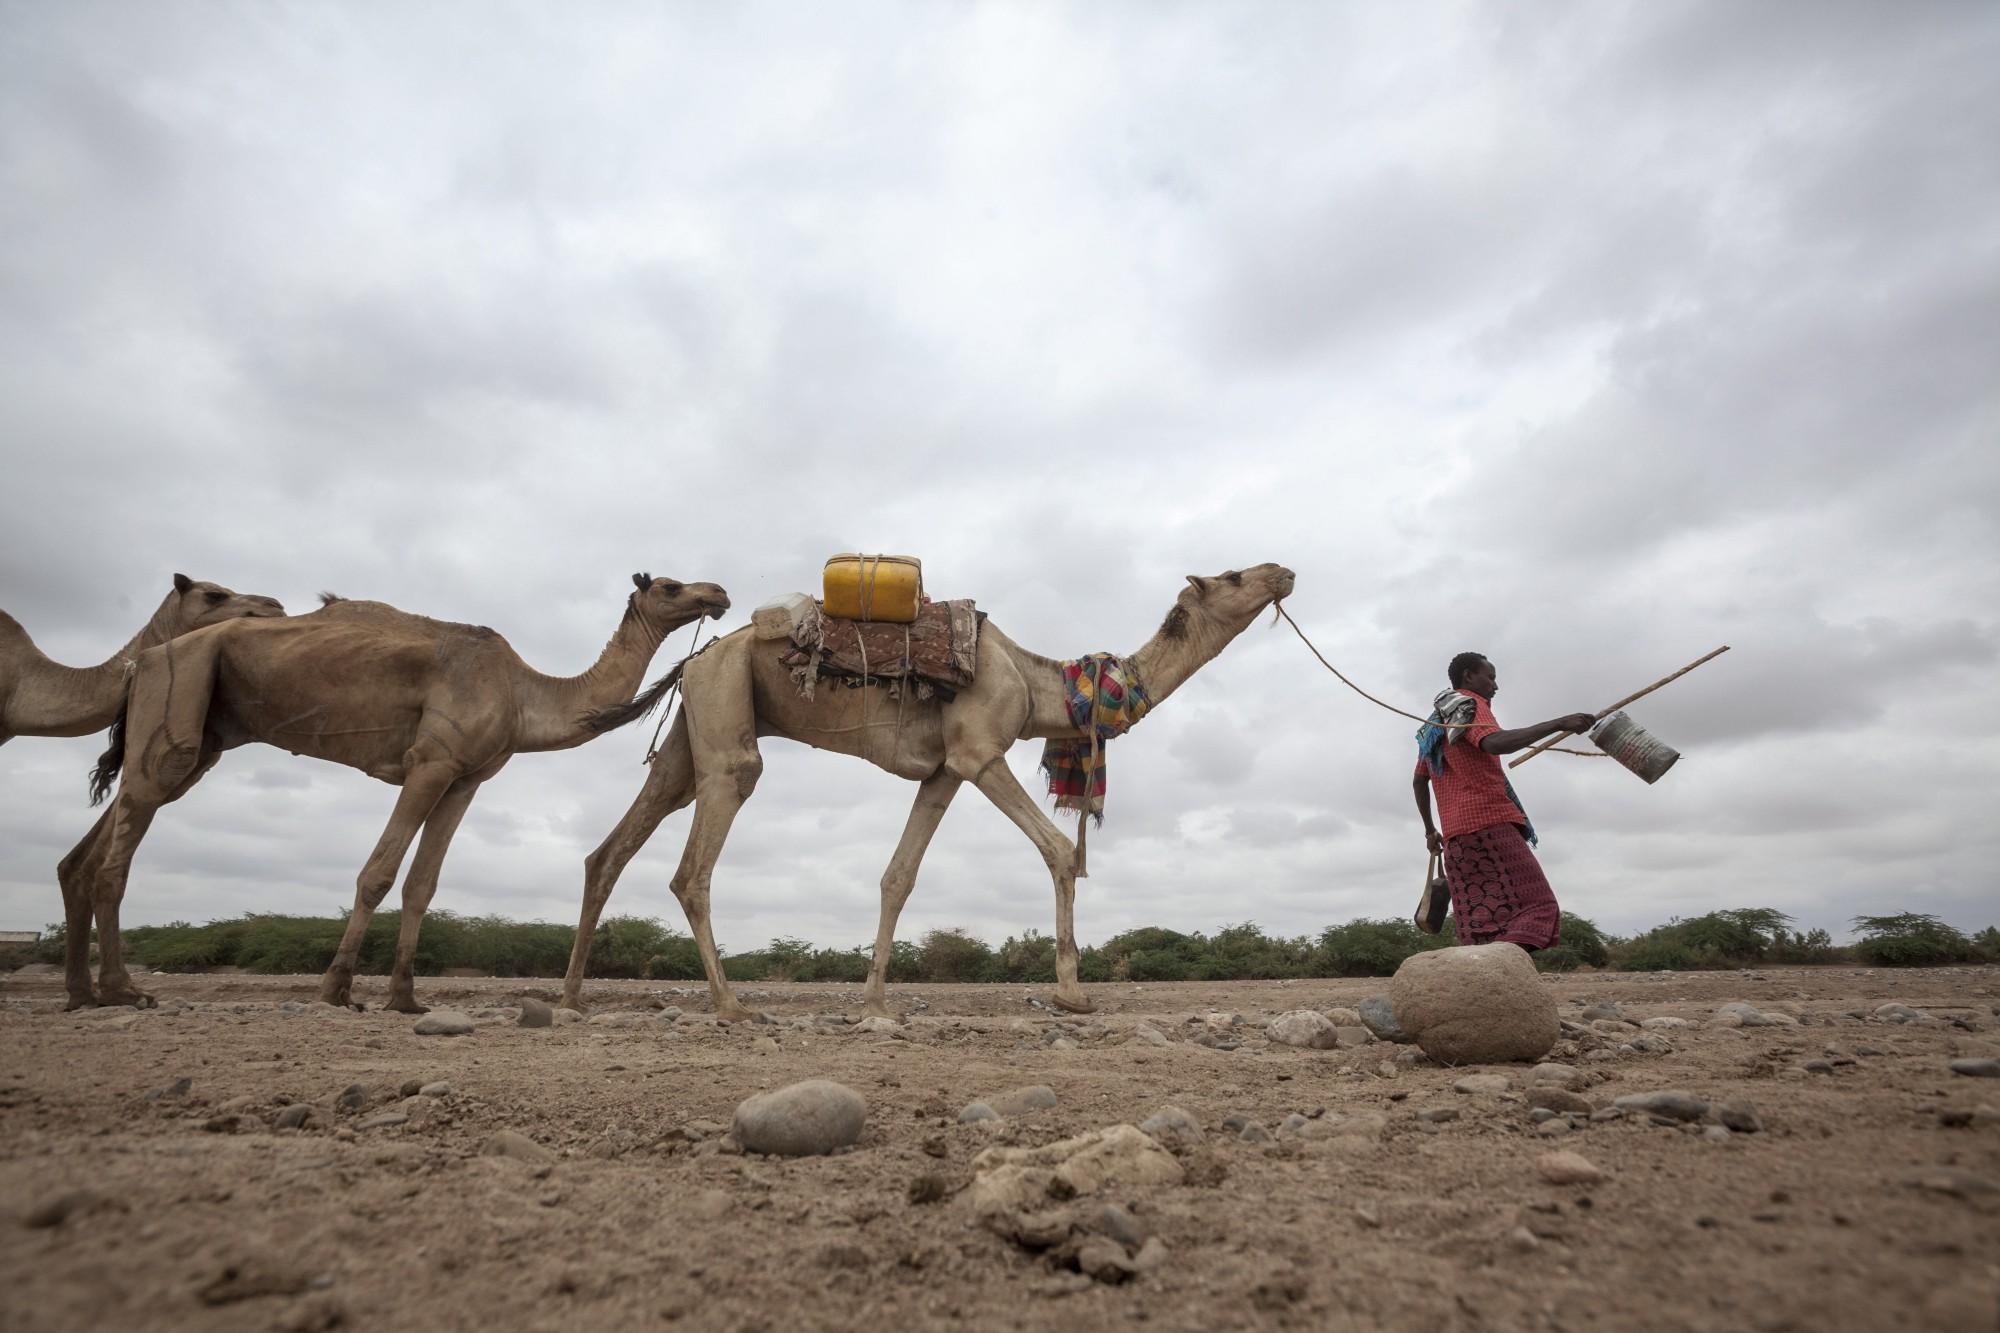 Ethiopia Is In The Grip Of Its Worst Drought Recent History With Water Supply East African Country At Lowest Point Years